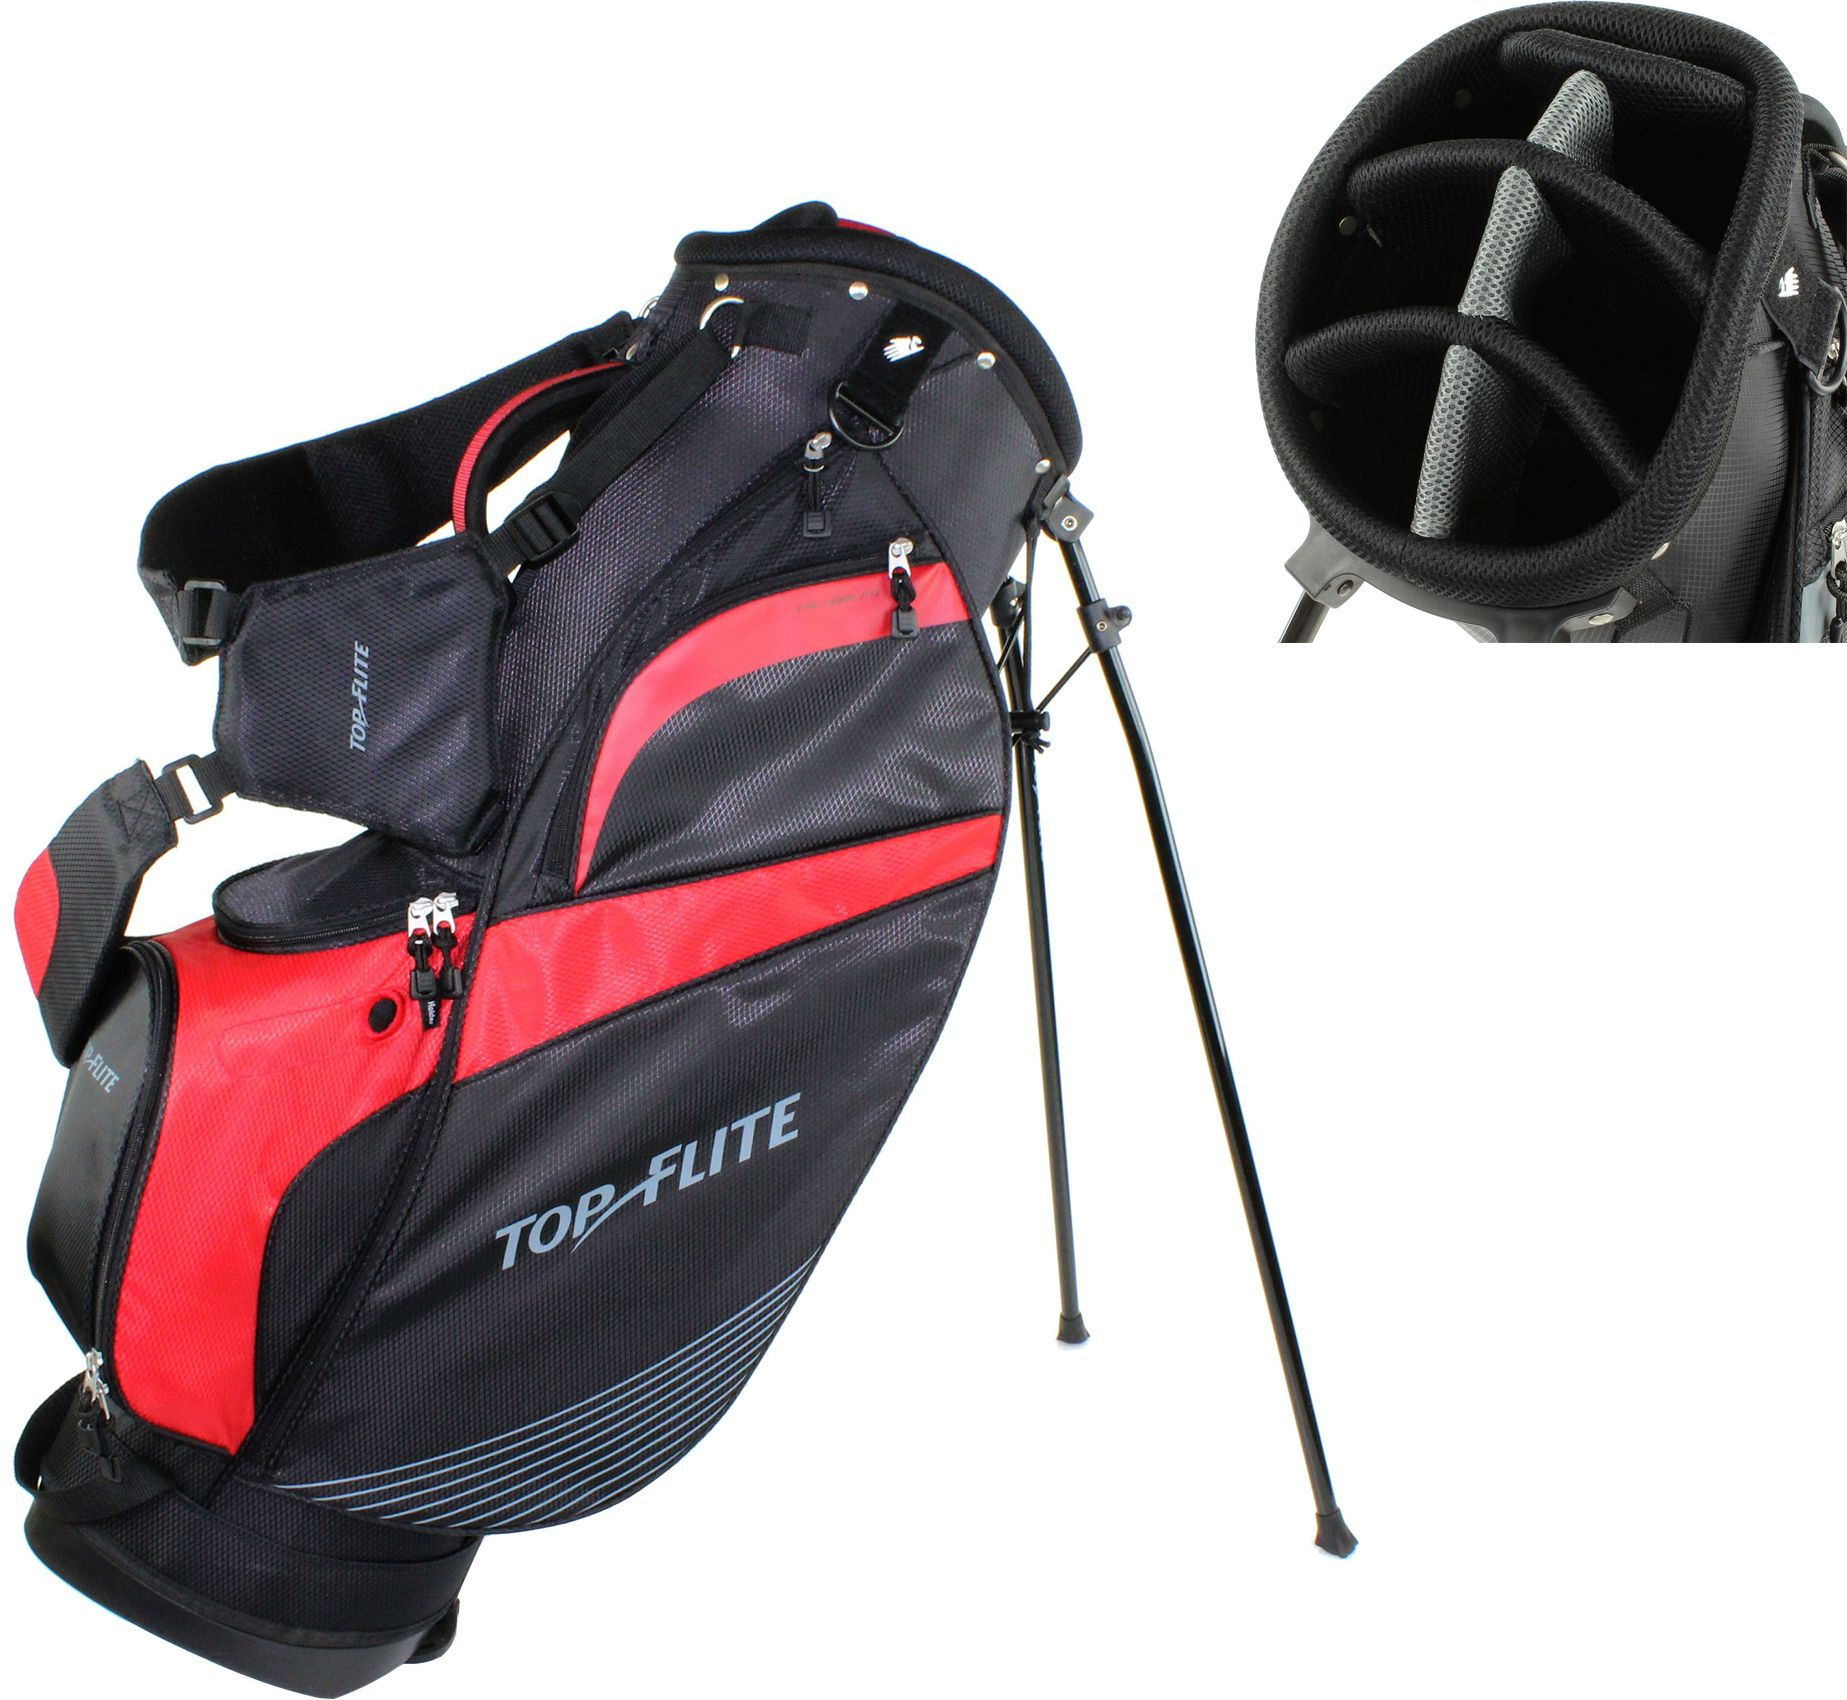 New Jersey Travel Golf Bags Images Top Flite Lightweight Stand Bag 39 S Sporting Goods